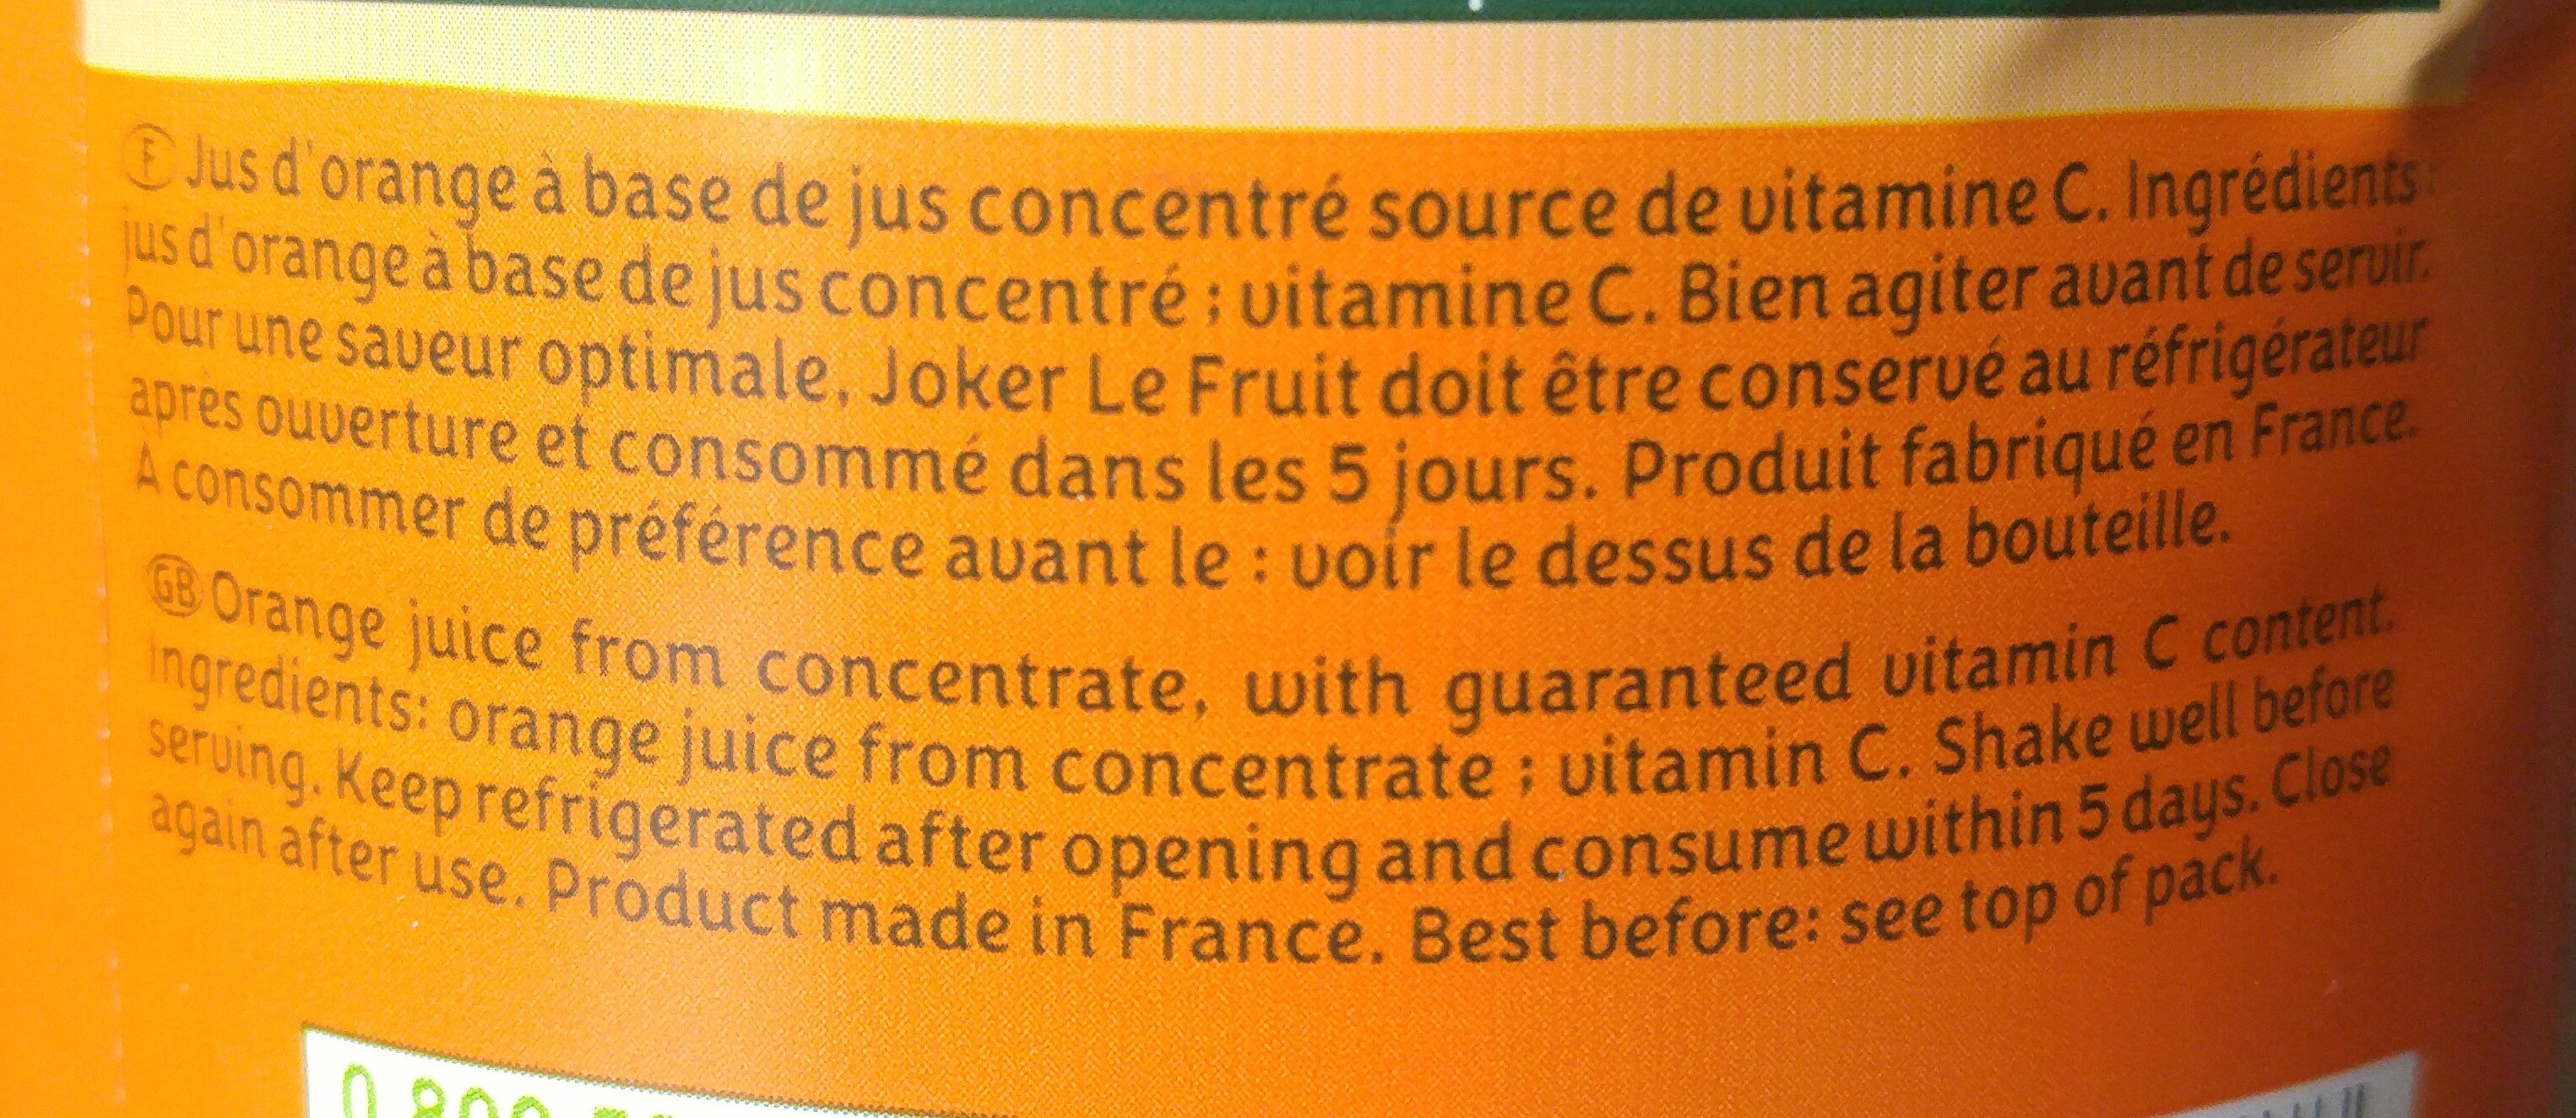 Le Fruit - Orange sans pulpe - Ingredients - fr